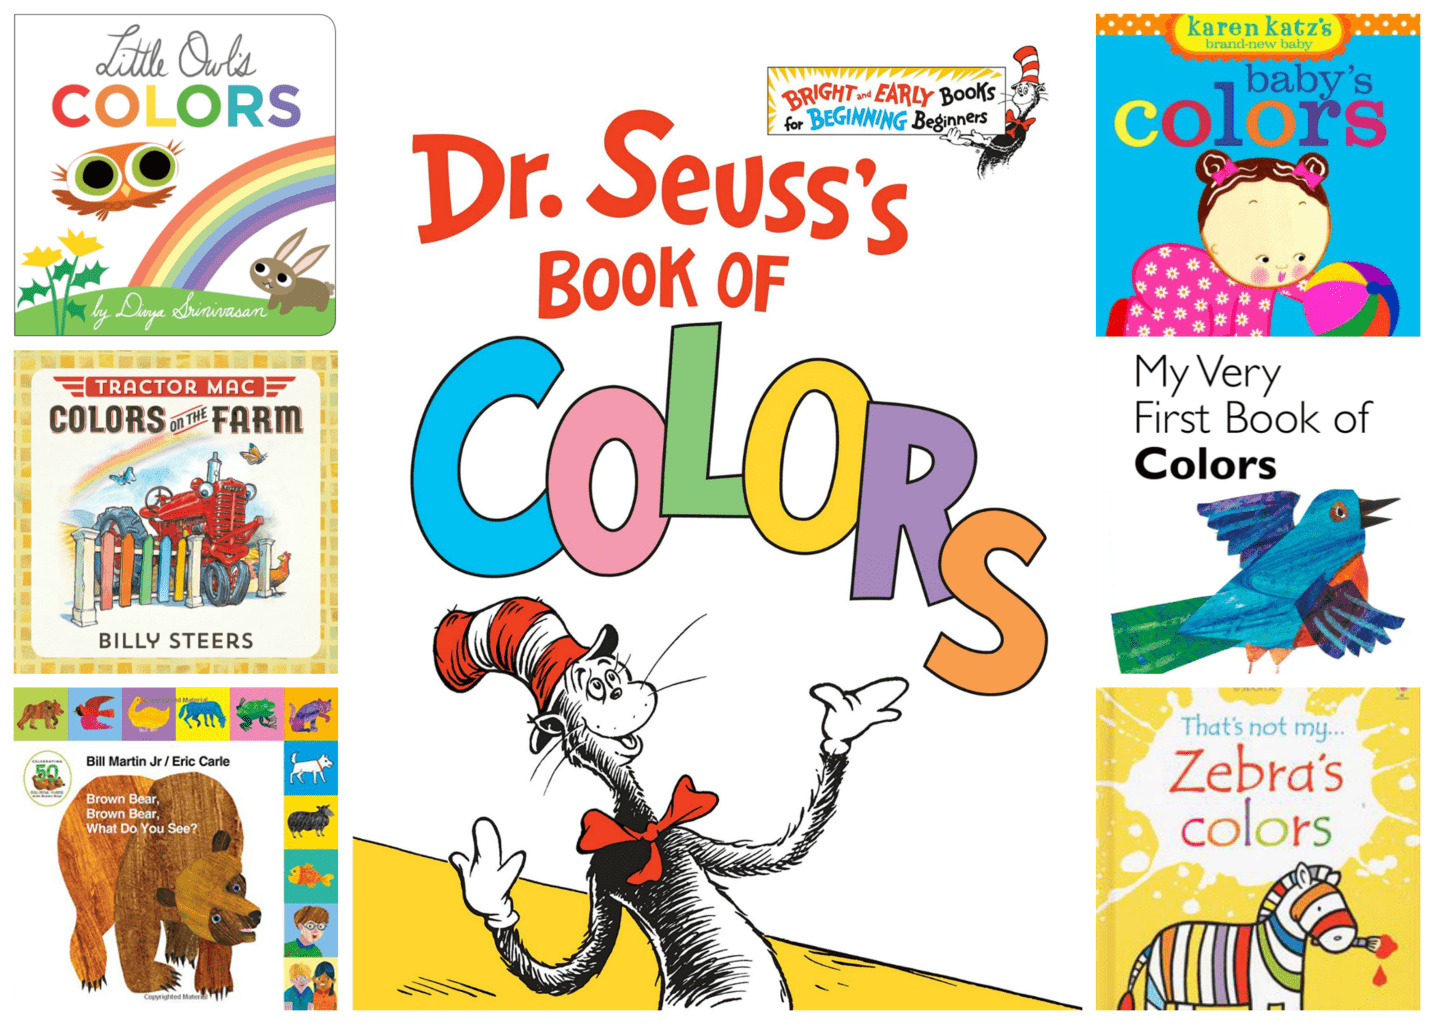 Color Bath - How to Teach Colors to a Baby or Toddler - Fun Color-Themed Books